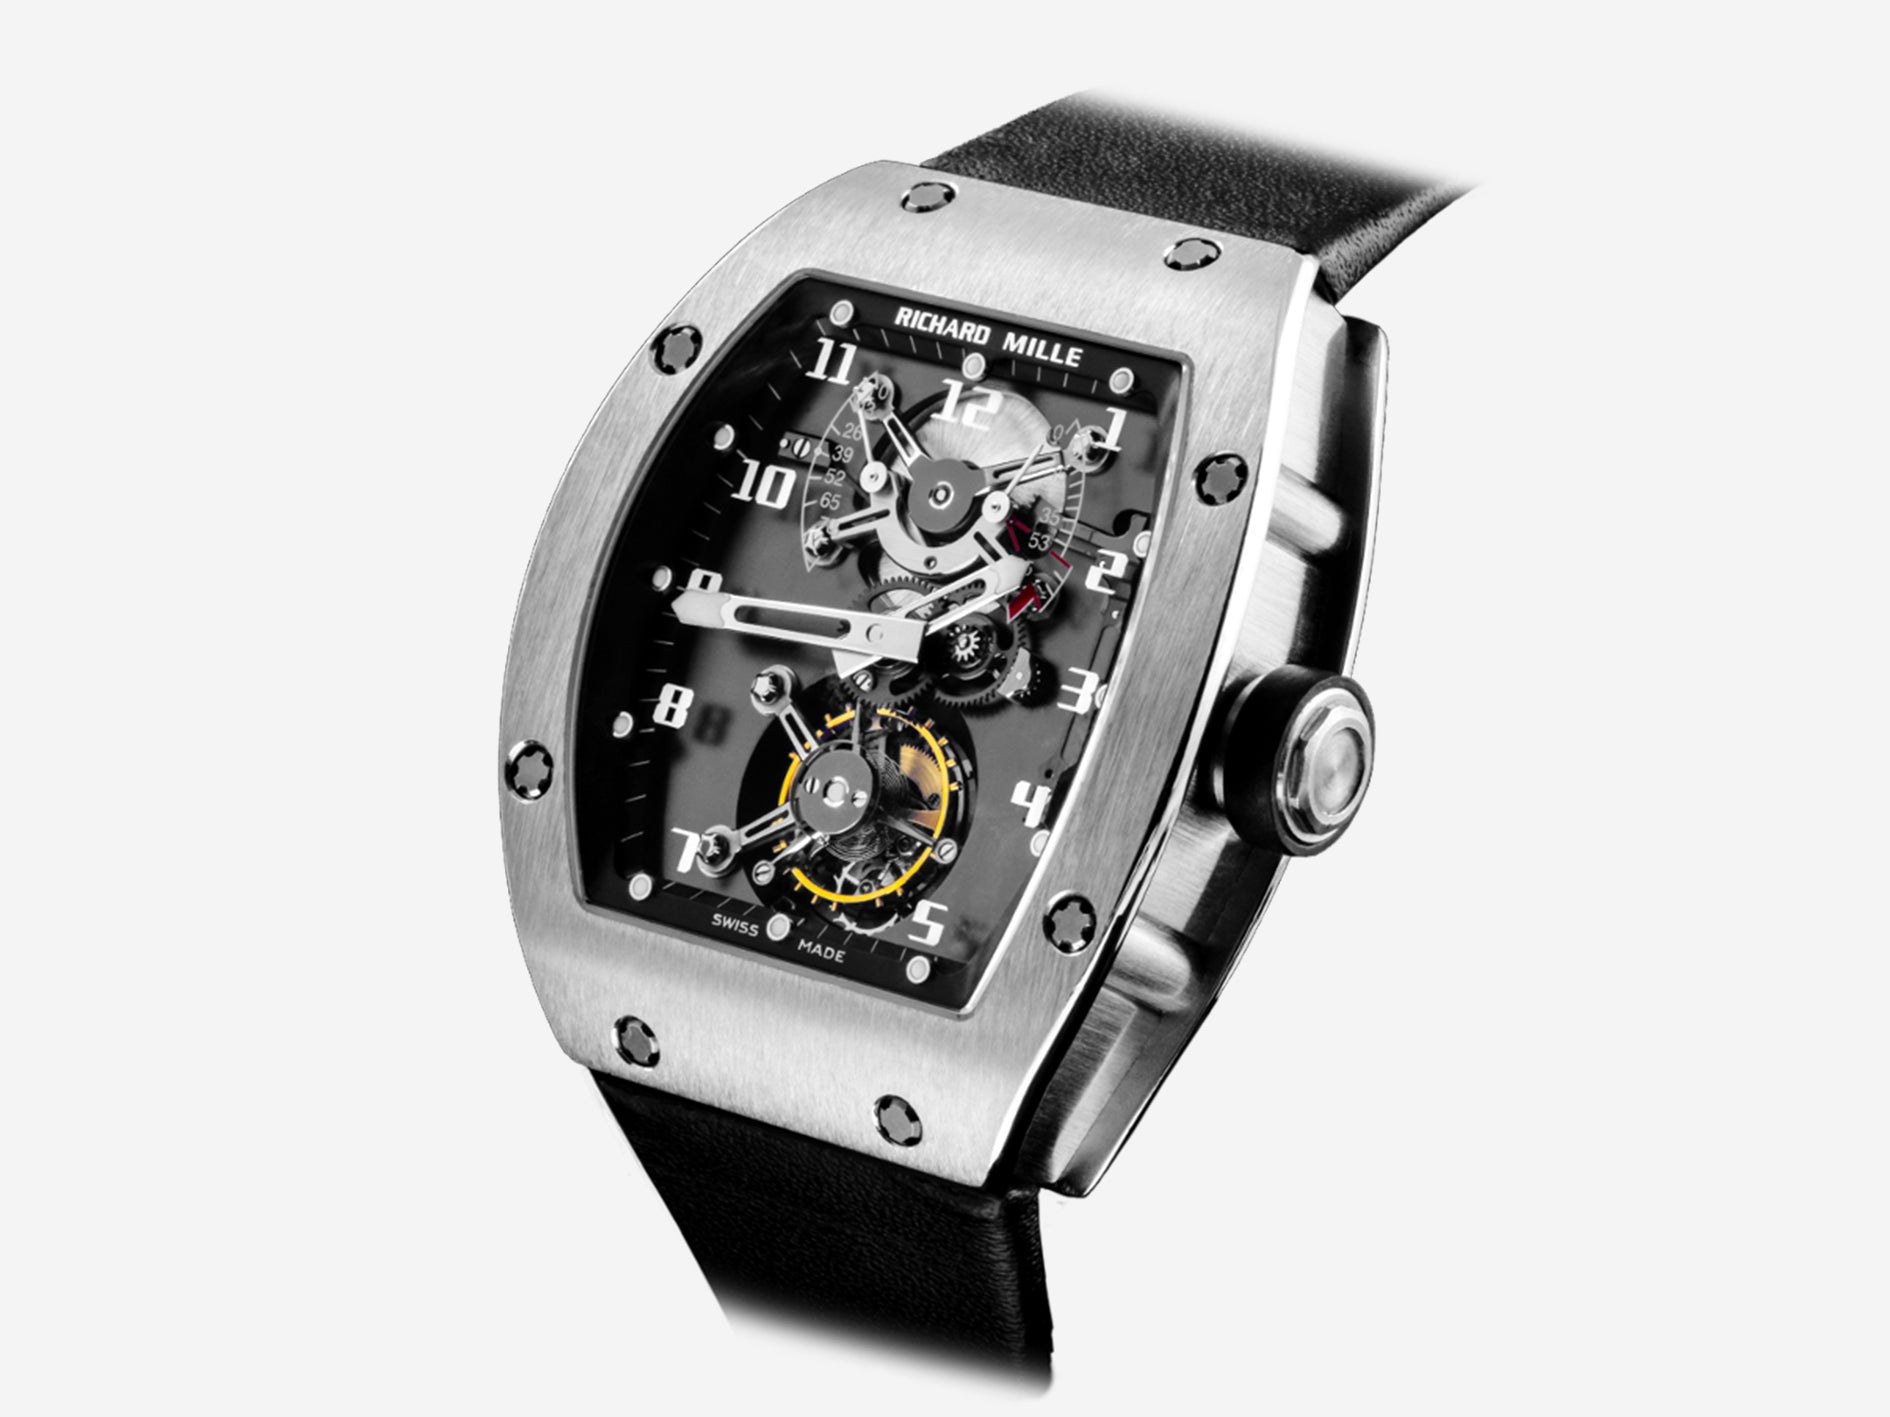 Richard Mille RM001 with the movement made by Renaud et Papi for A Collected Man London